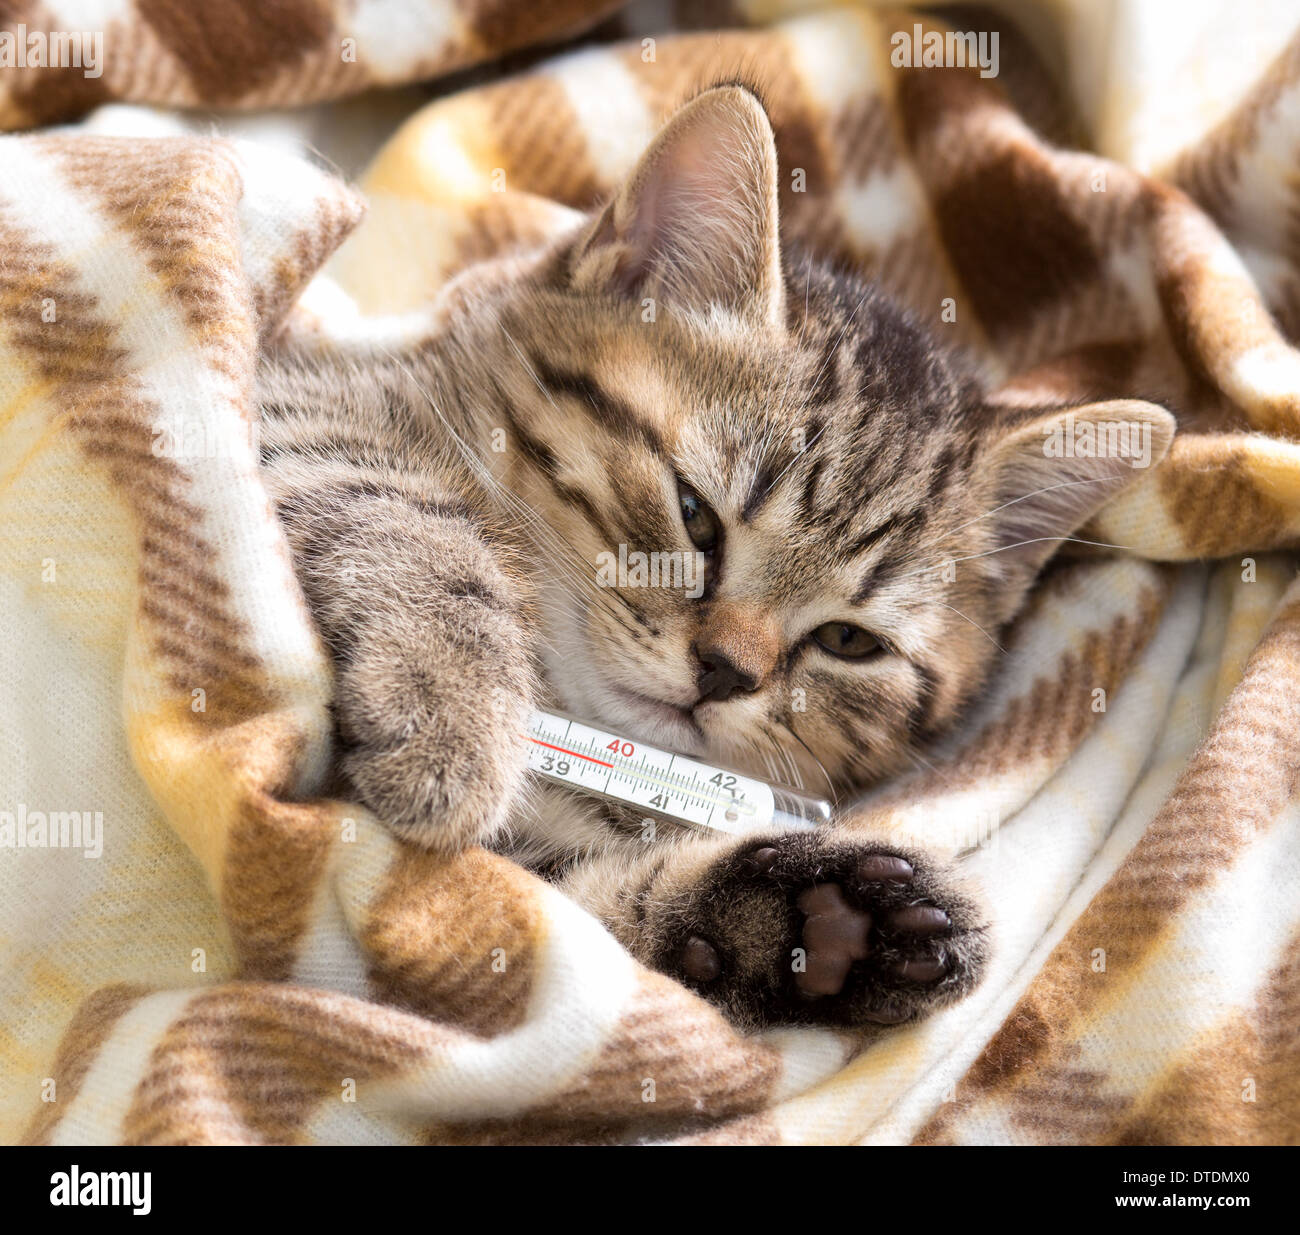 Ill kitten lying with high temperature - Stock Image